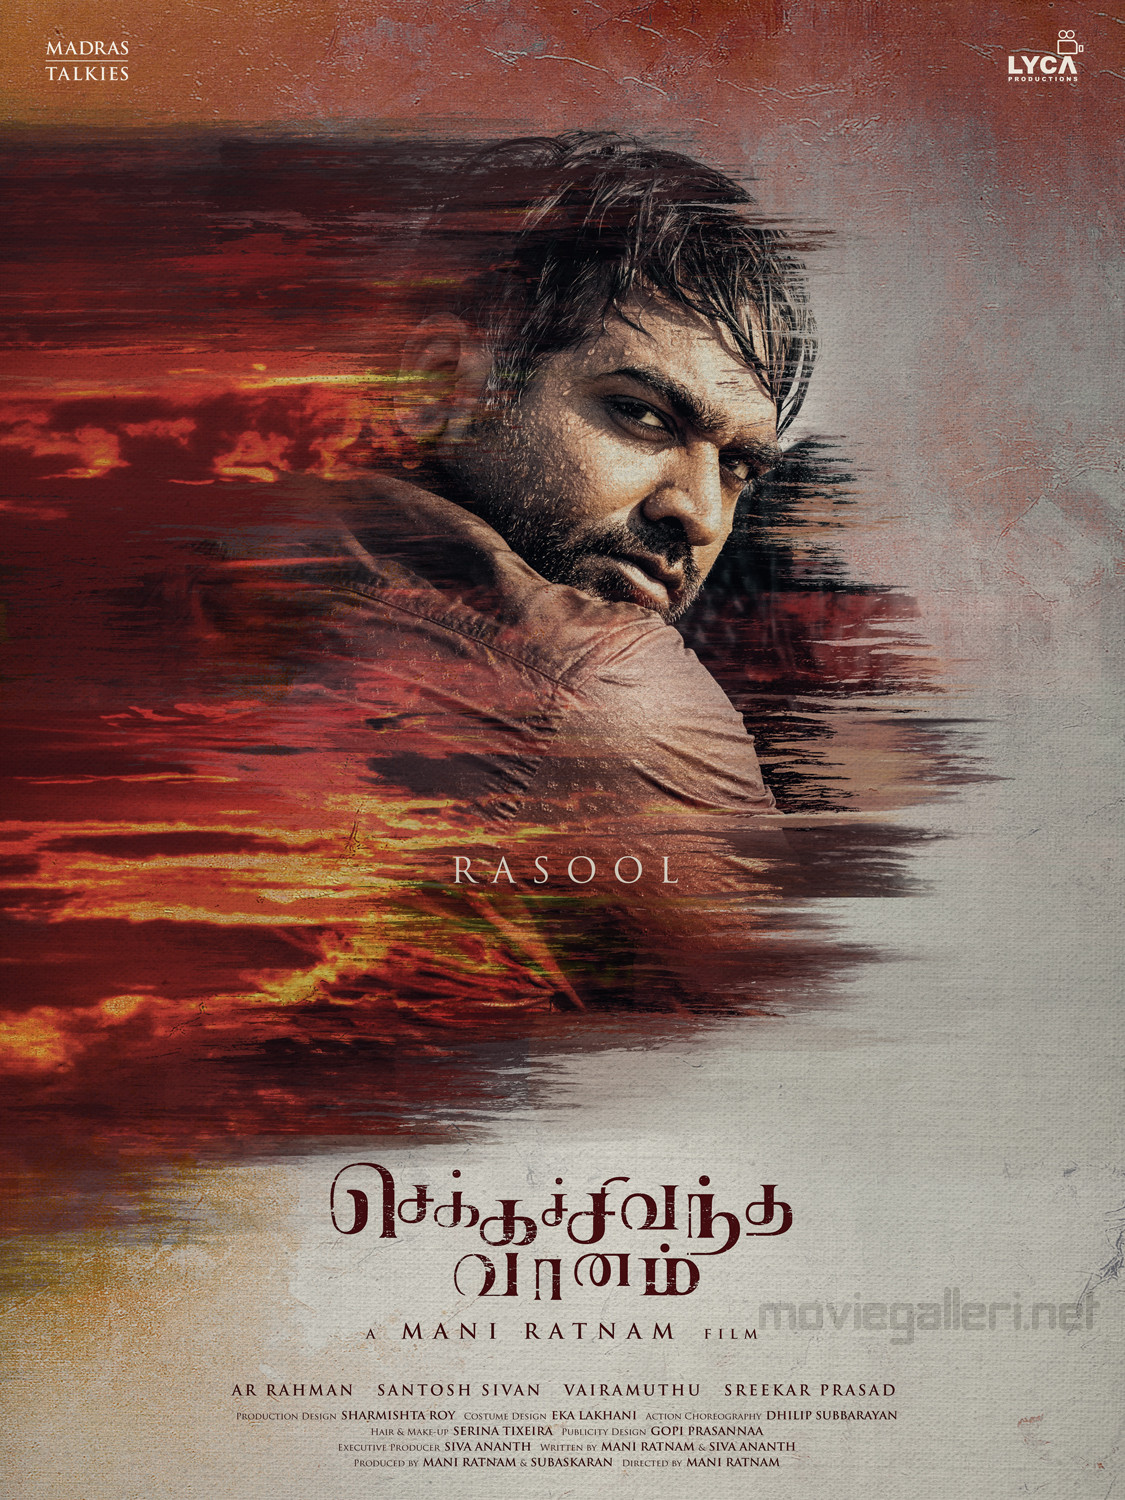 Actor Vijay Sethupathi as Rasool in Chekka Chivantha Vaanam Movie Poster HD